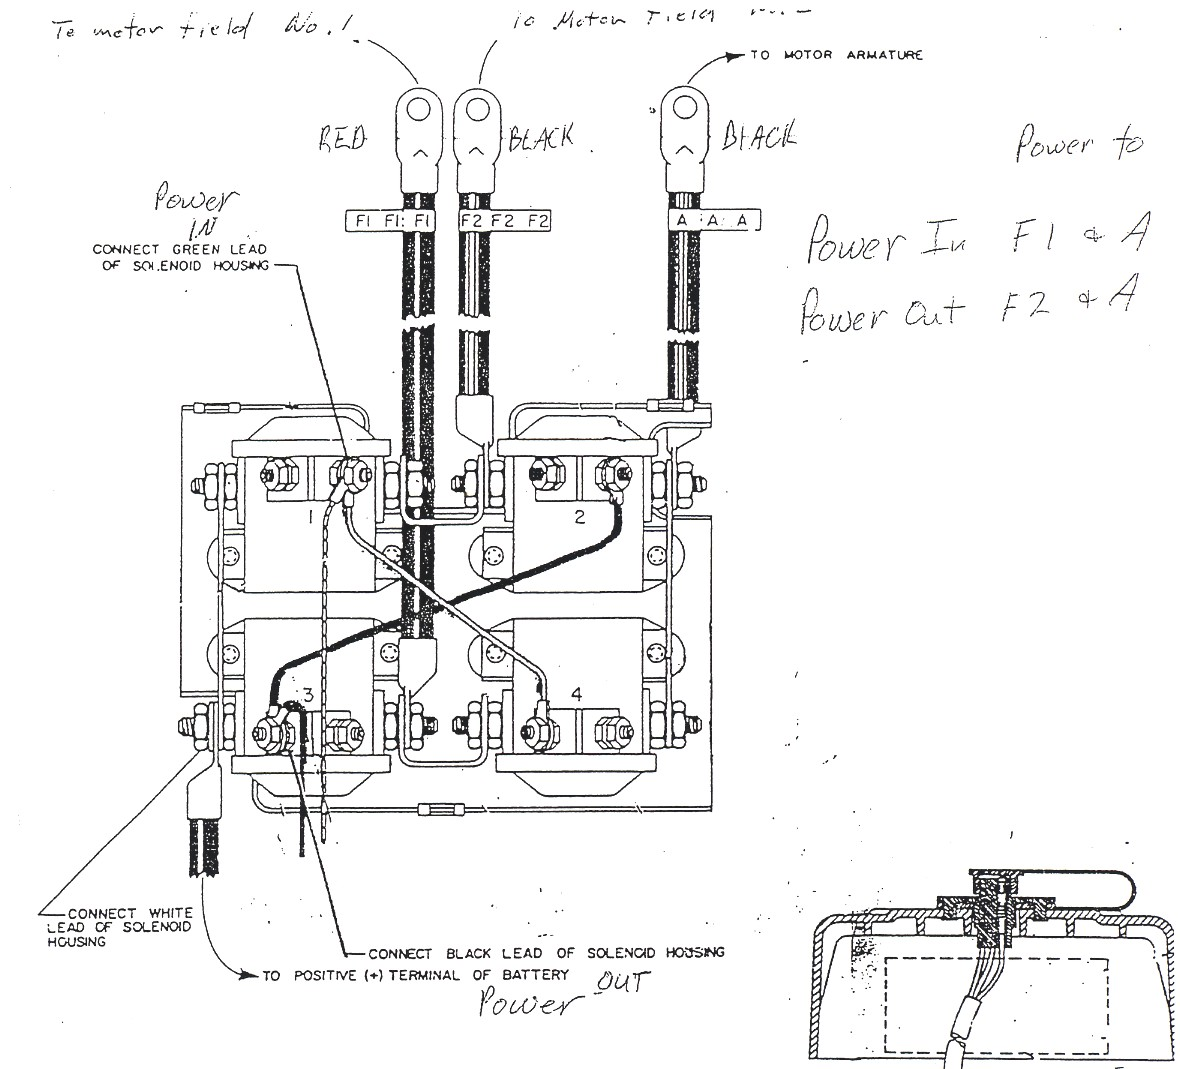 Warn Winch Control Box Wiring Diagram Wiring Diagrams Database – Warn Atv Winch Wiring Diagram